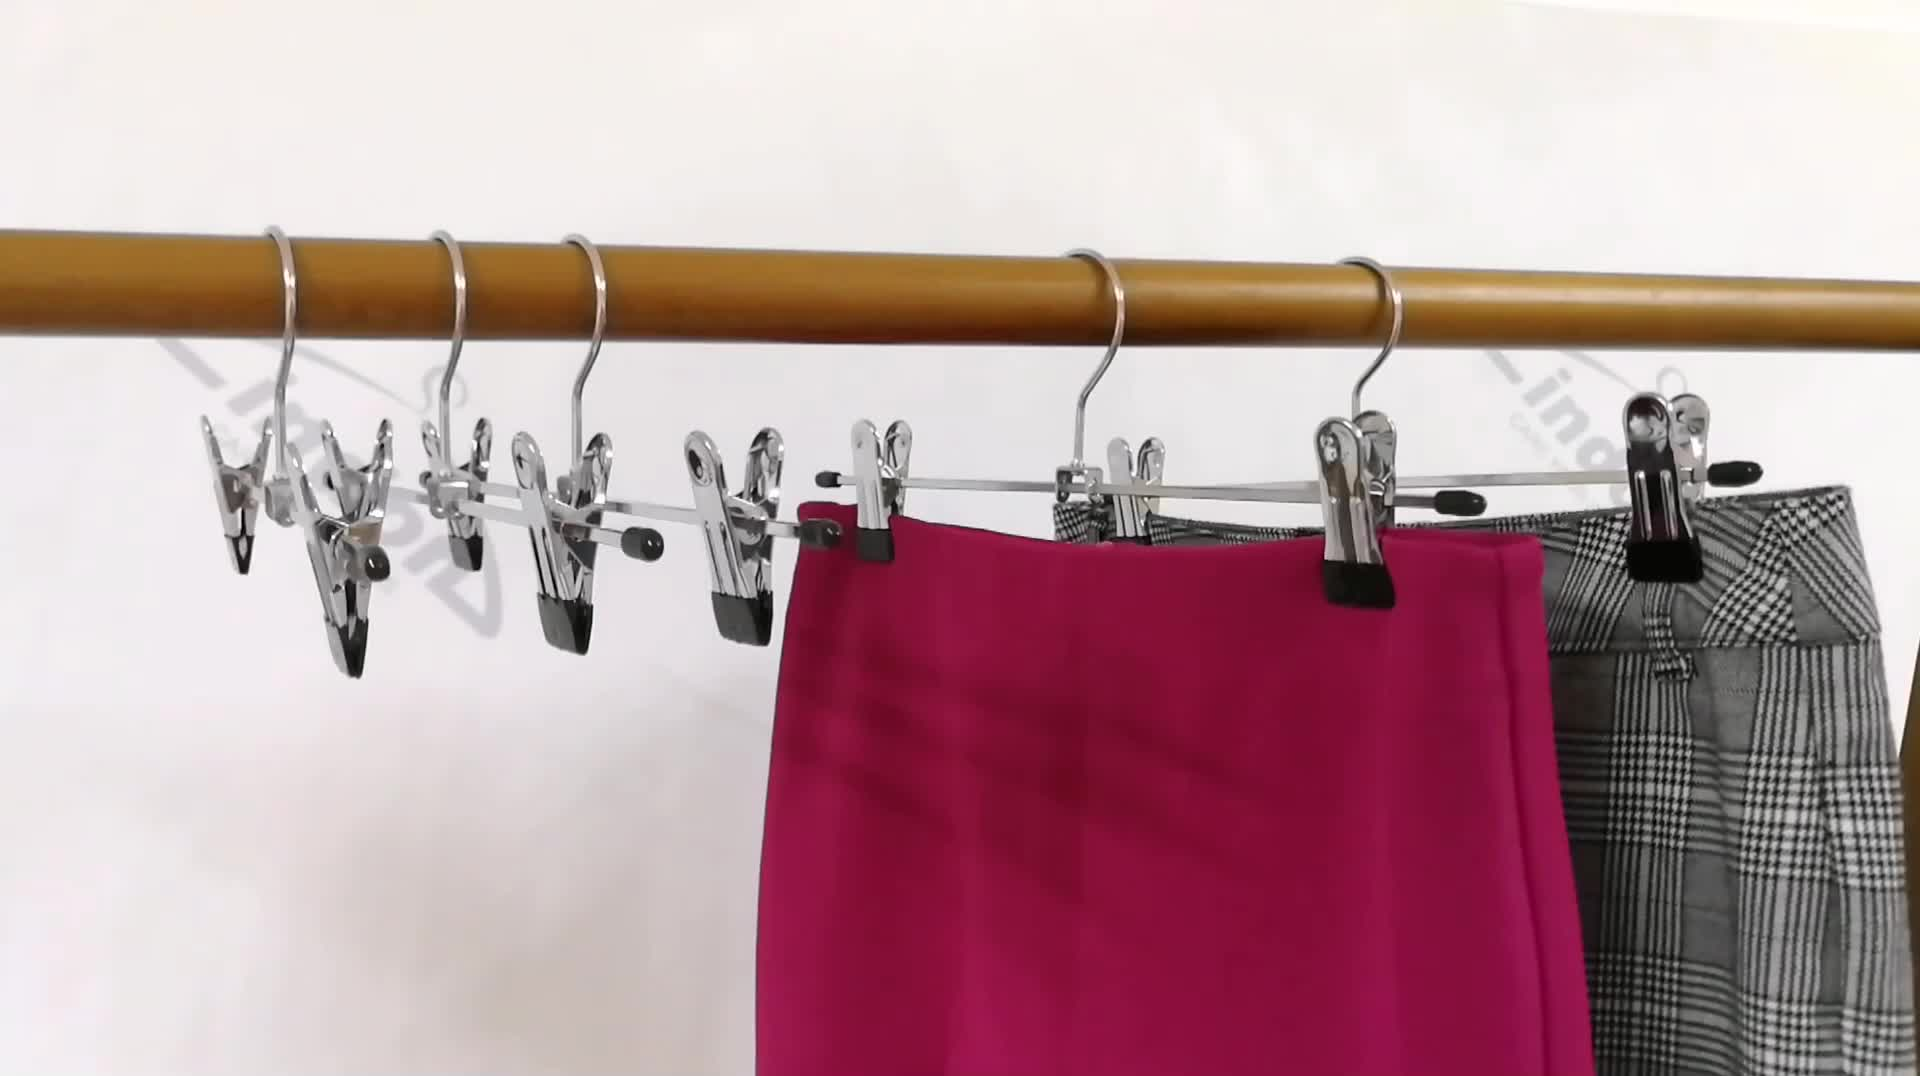 30% Off Pants Clothing Type Metal Clip Skirt Hangers with Clips